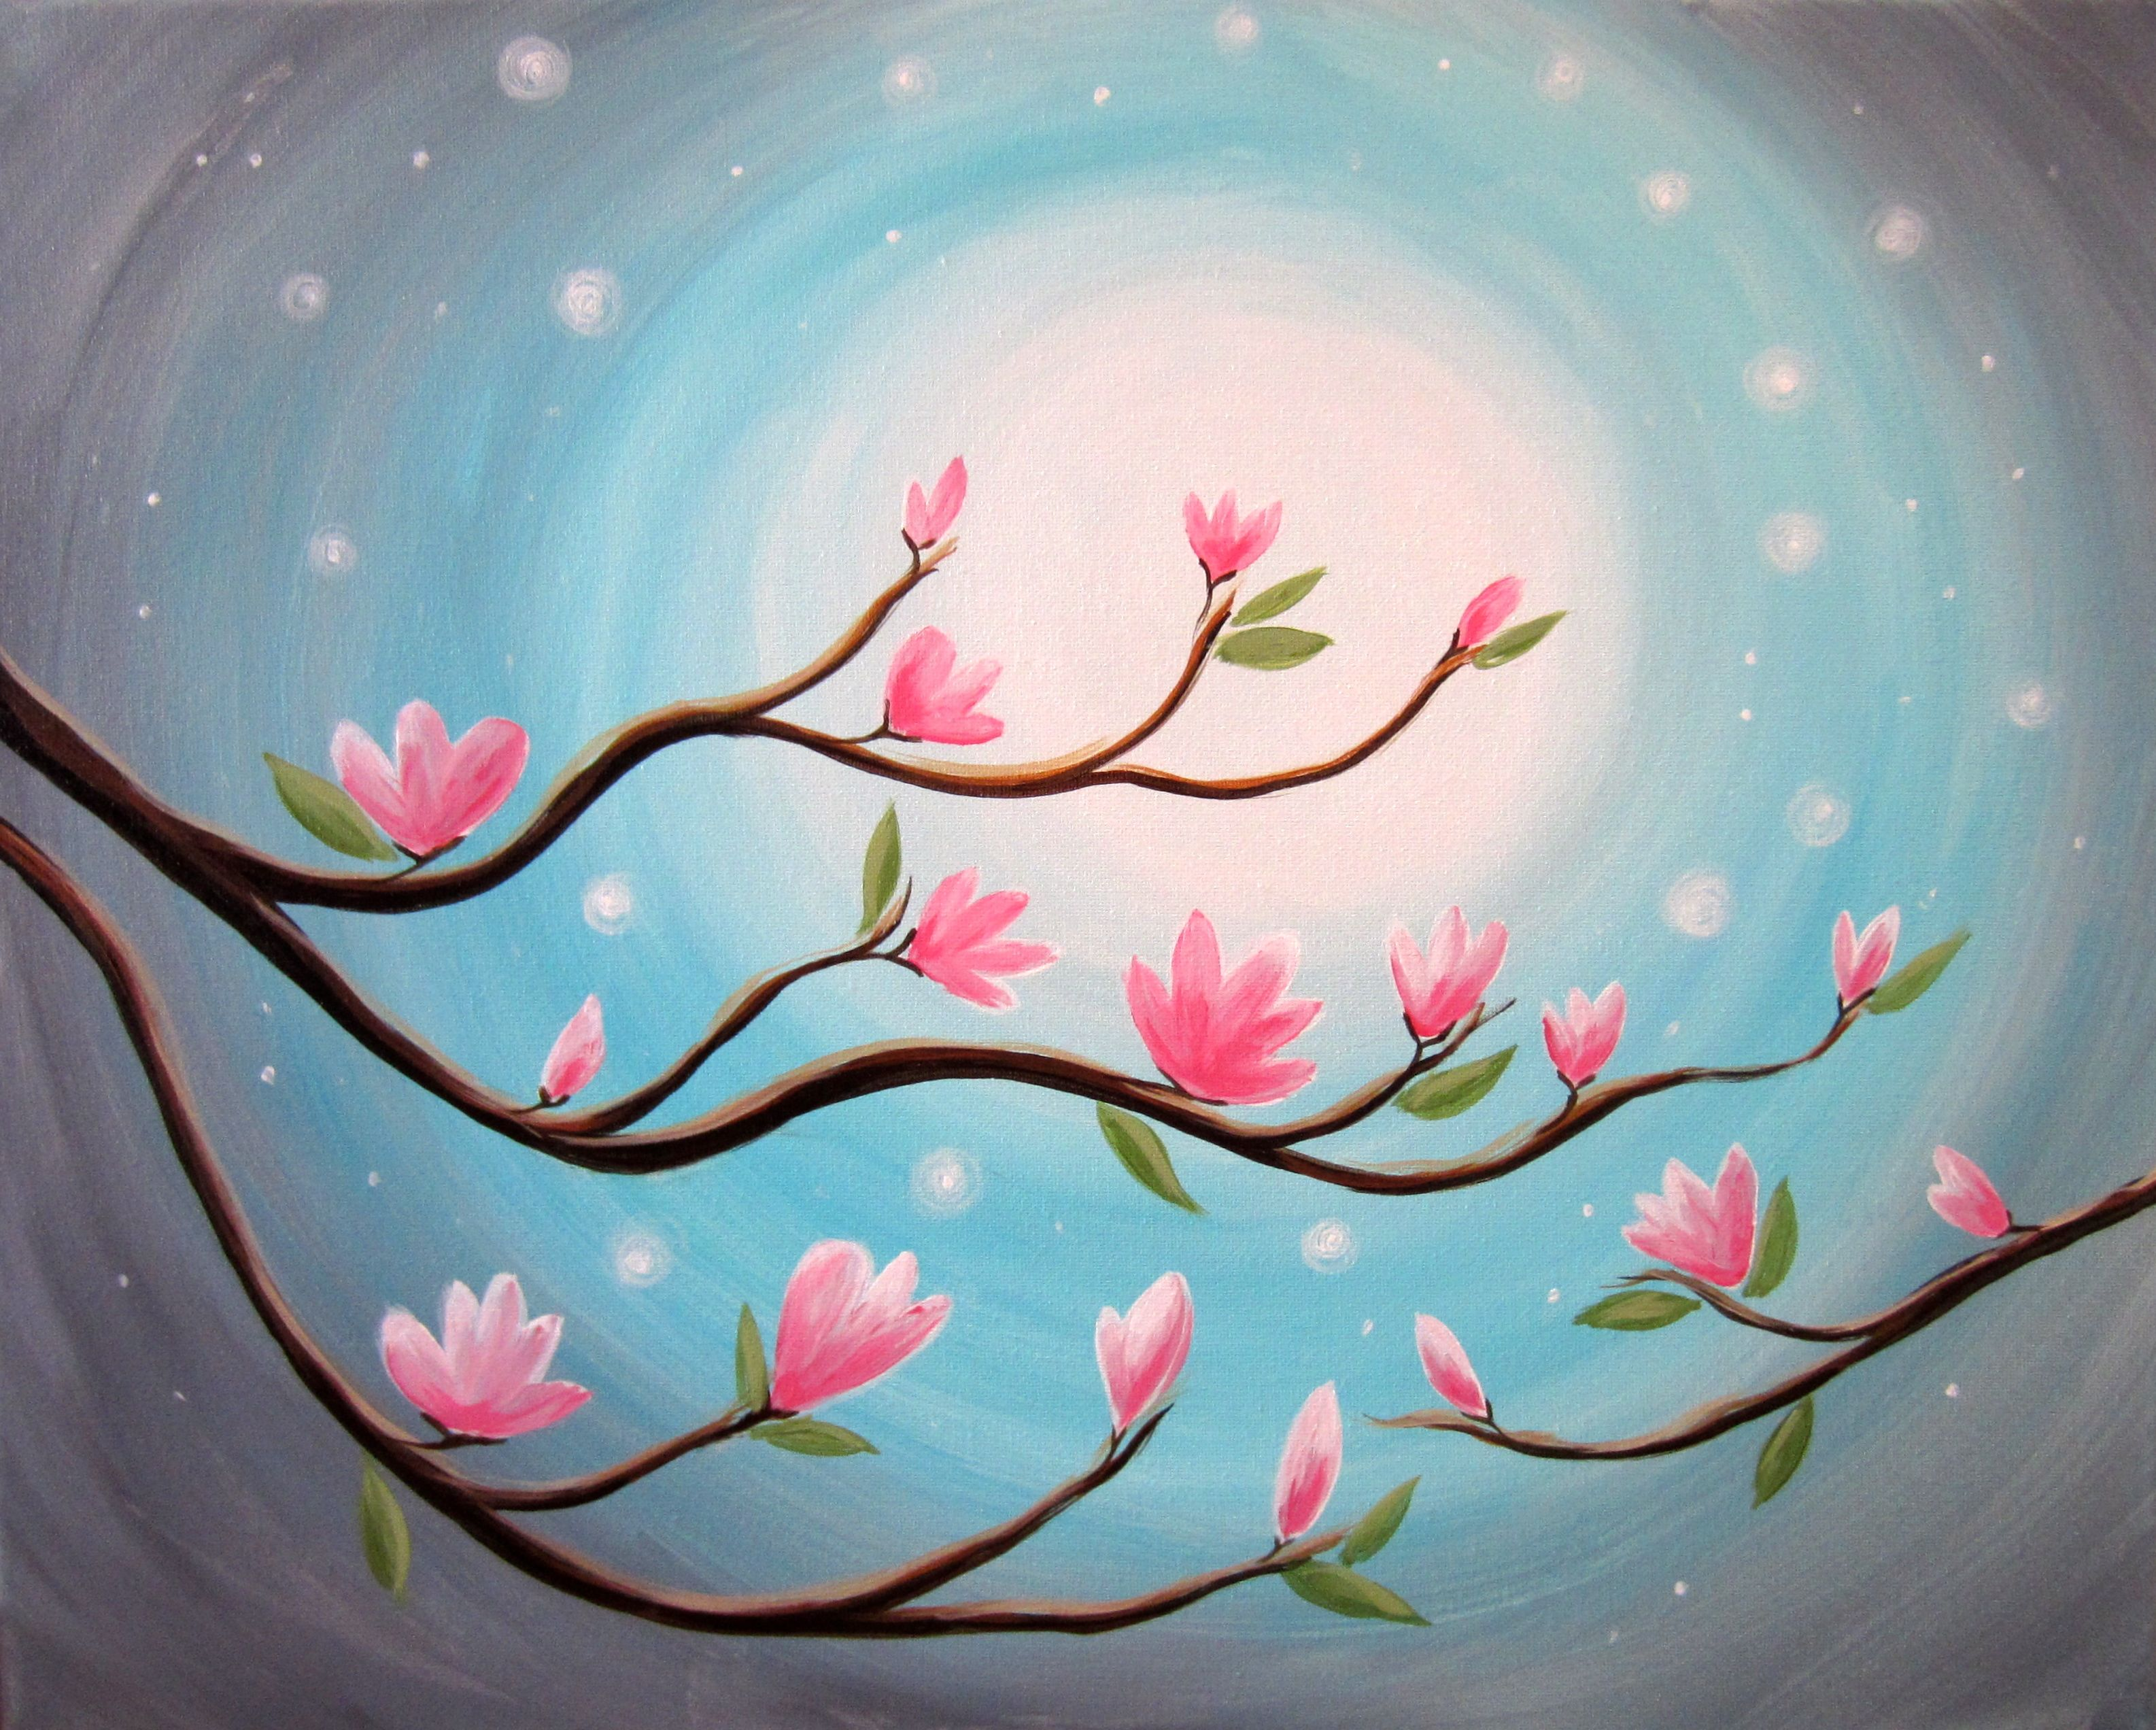 Find Your Next Paint Night Tree Painting Wine And Canvas Night